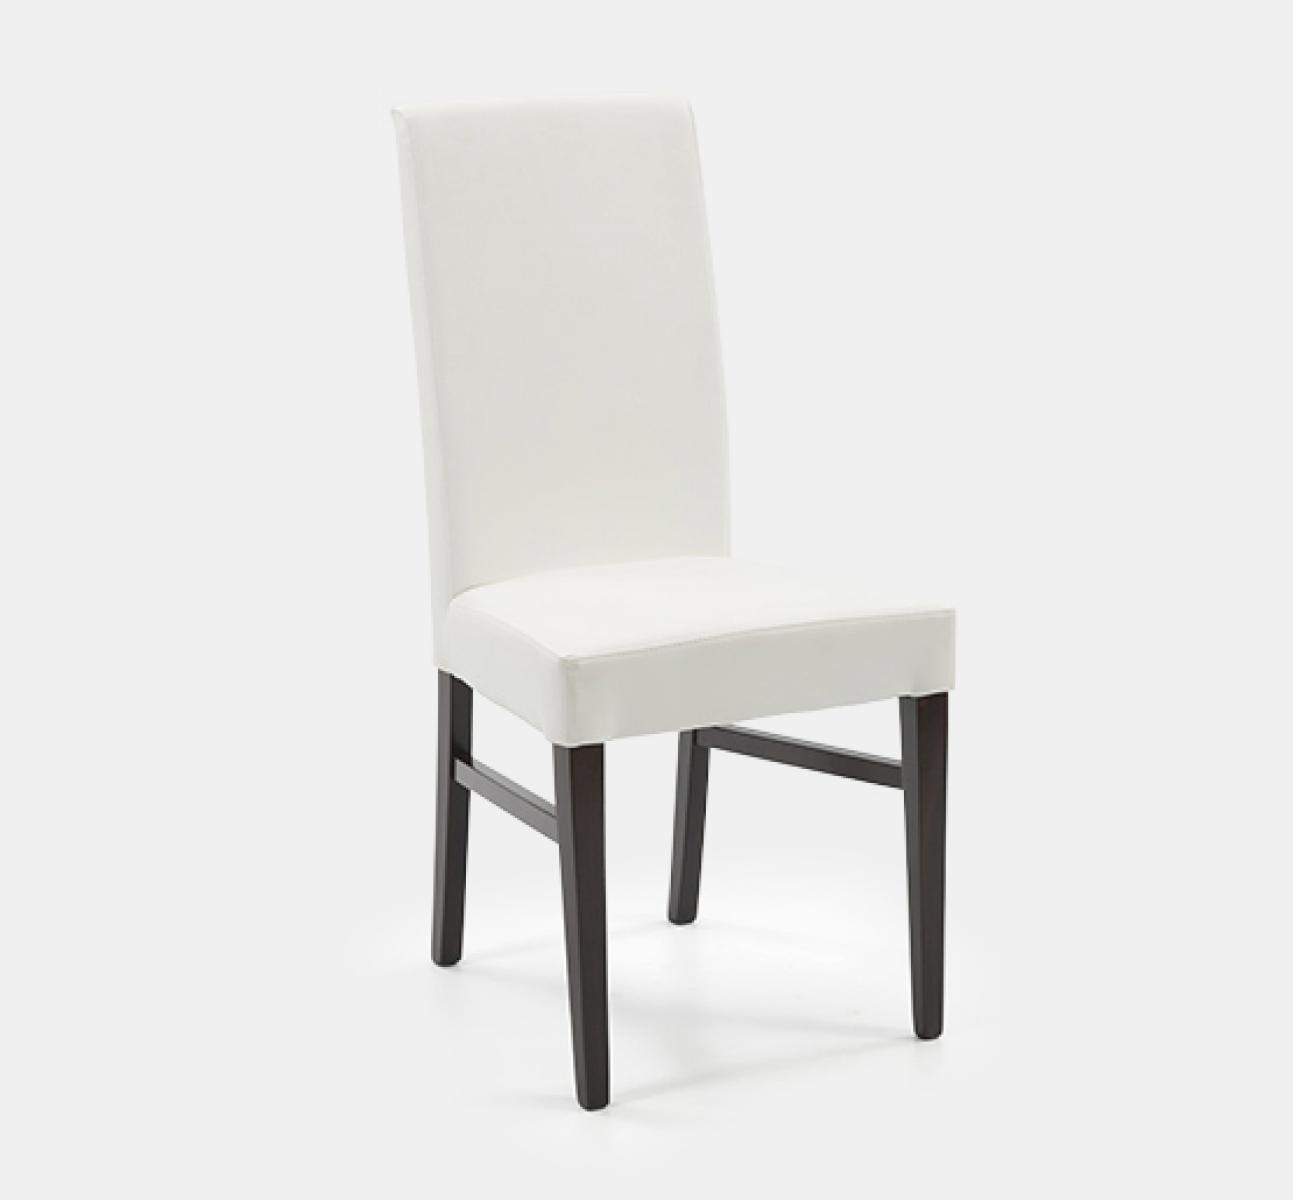 White upholstered dining chair